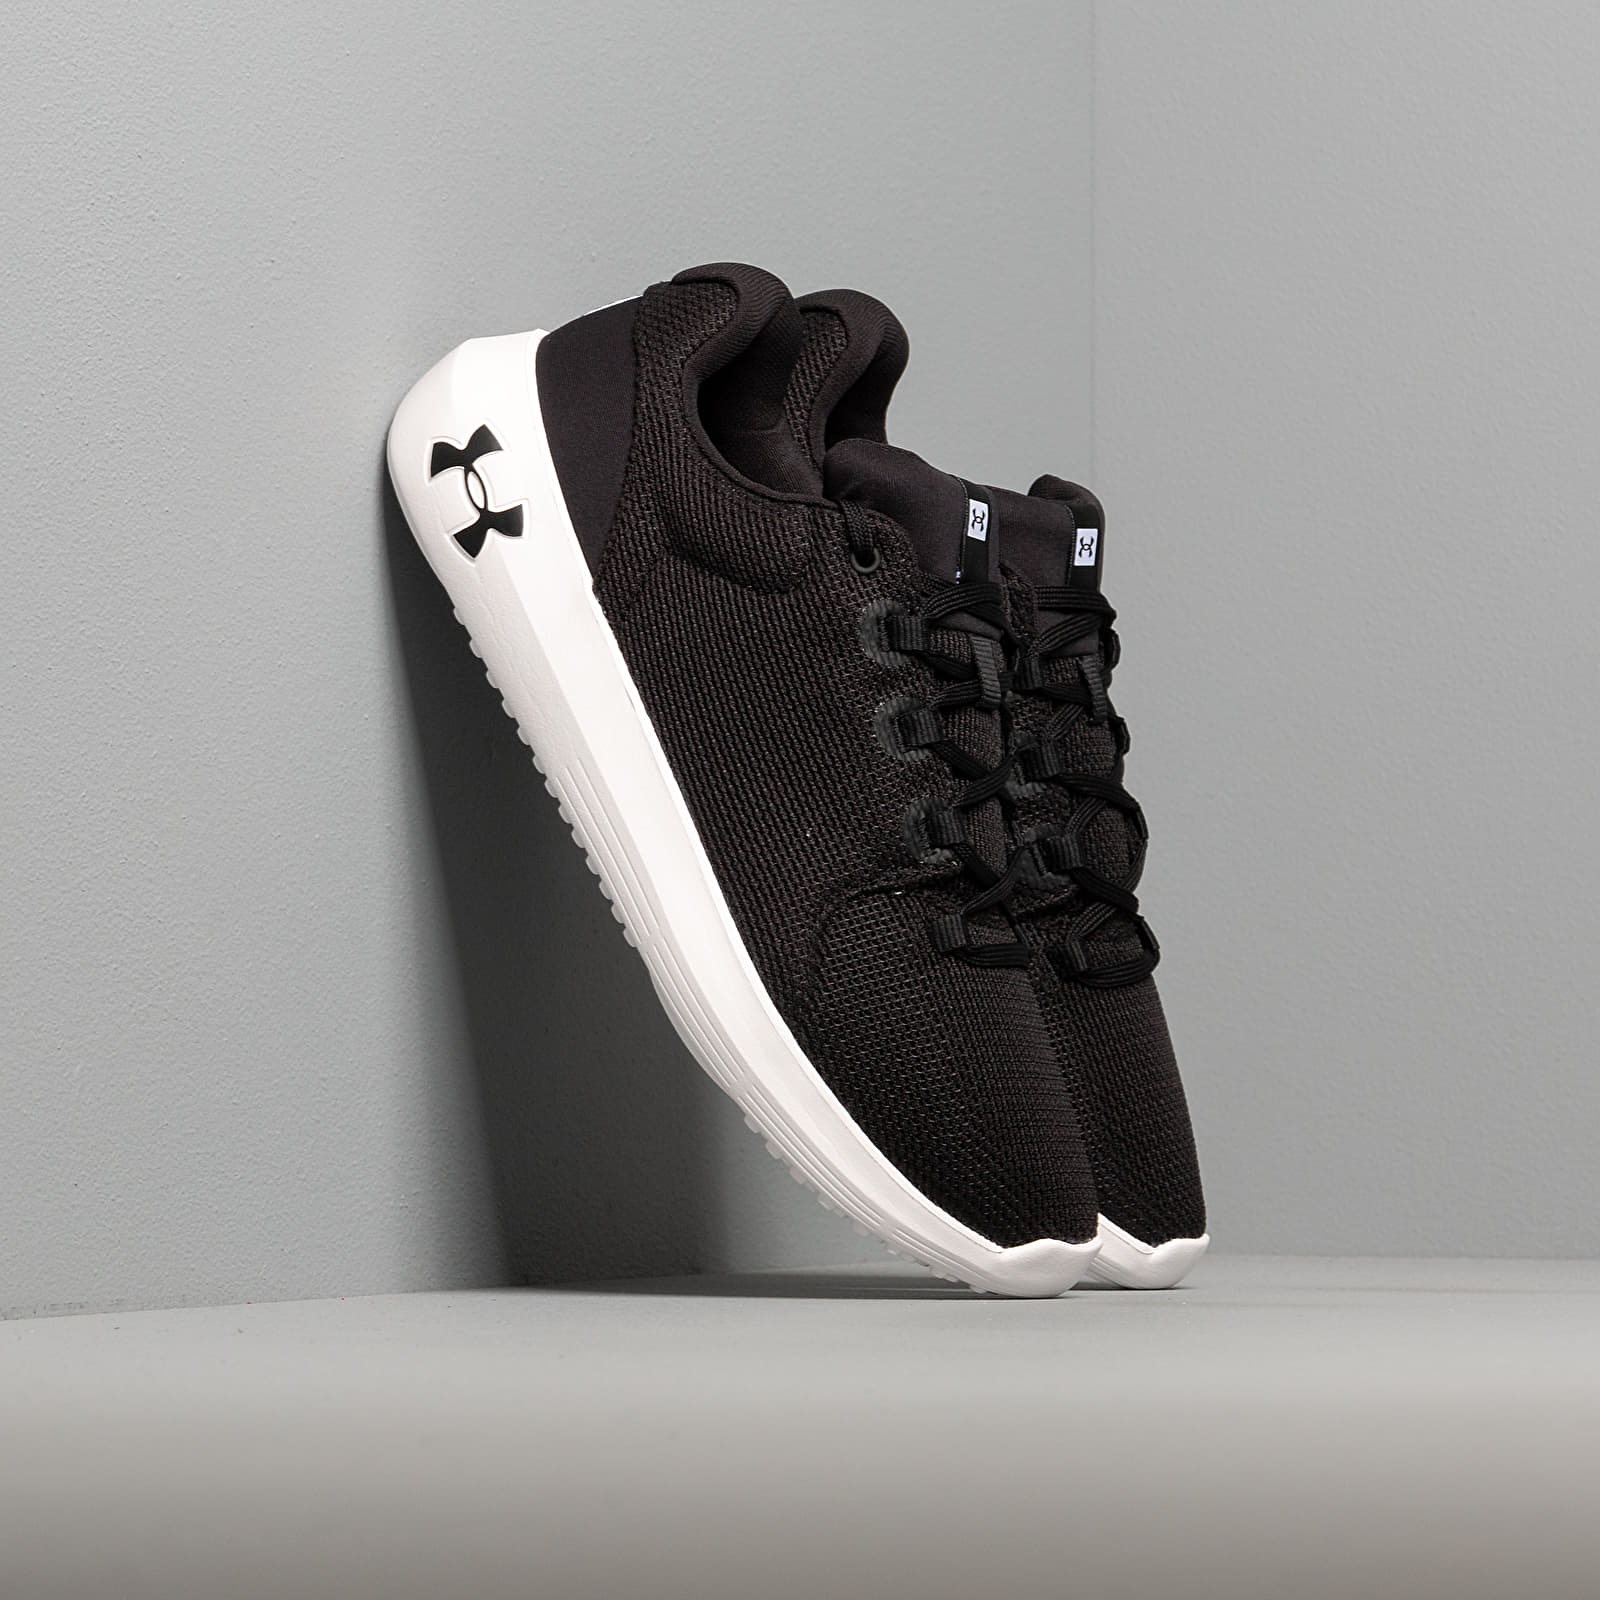 Muške tenisice Under Armour Ripple 2.0 Black/ White/ Black